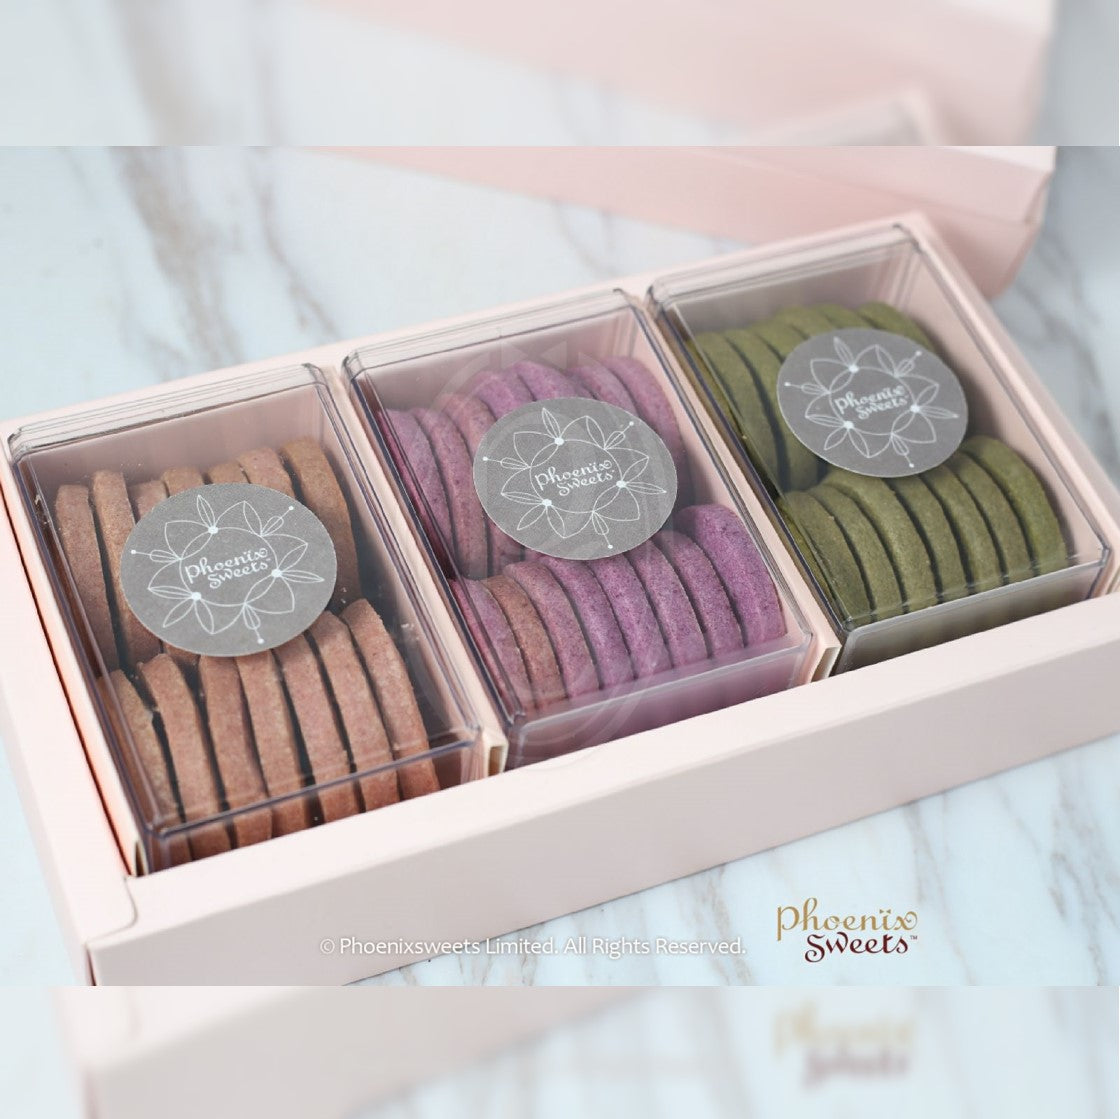 Phoenix Sweets Selected Homemade Cookie Box Set 曲奇 禮盒 香港 手信 Hong Kong Souvenir